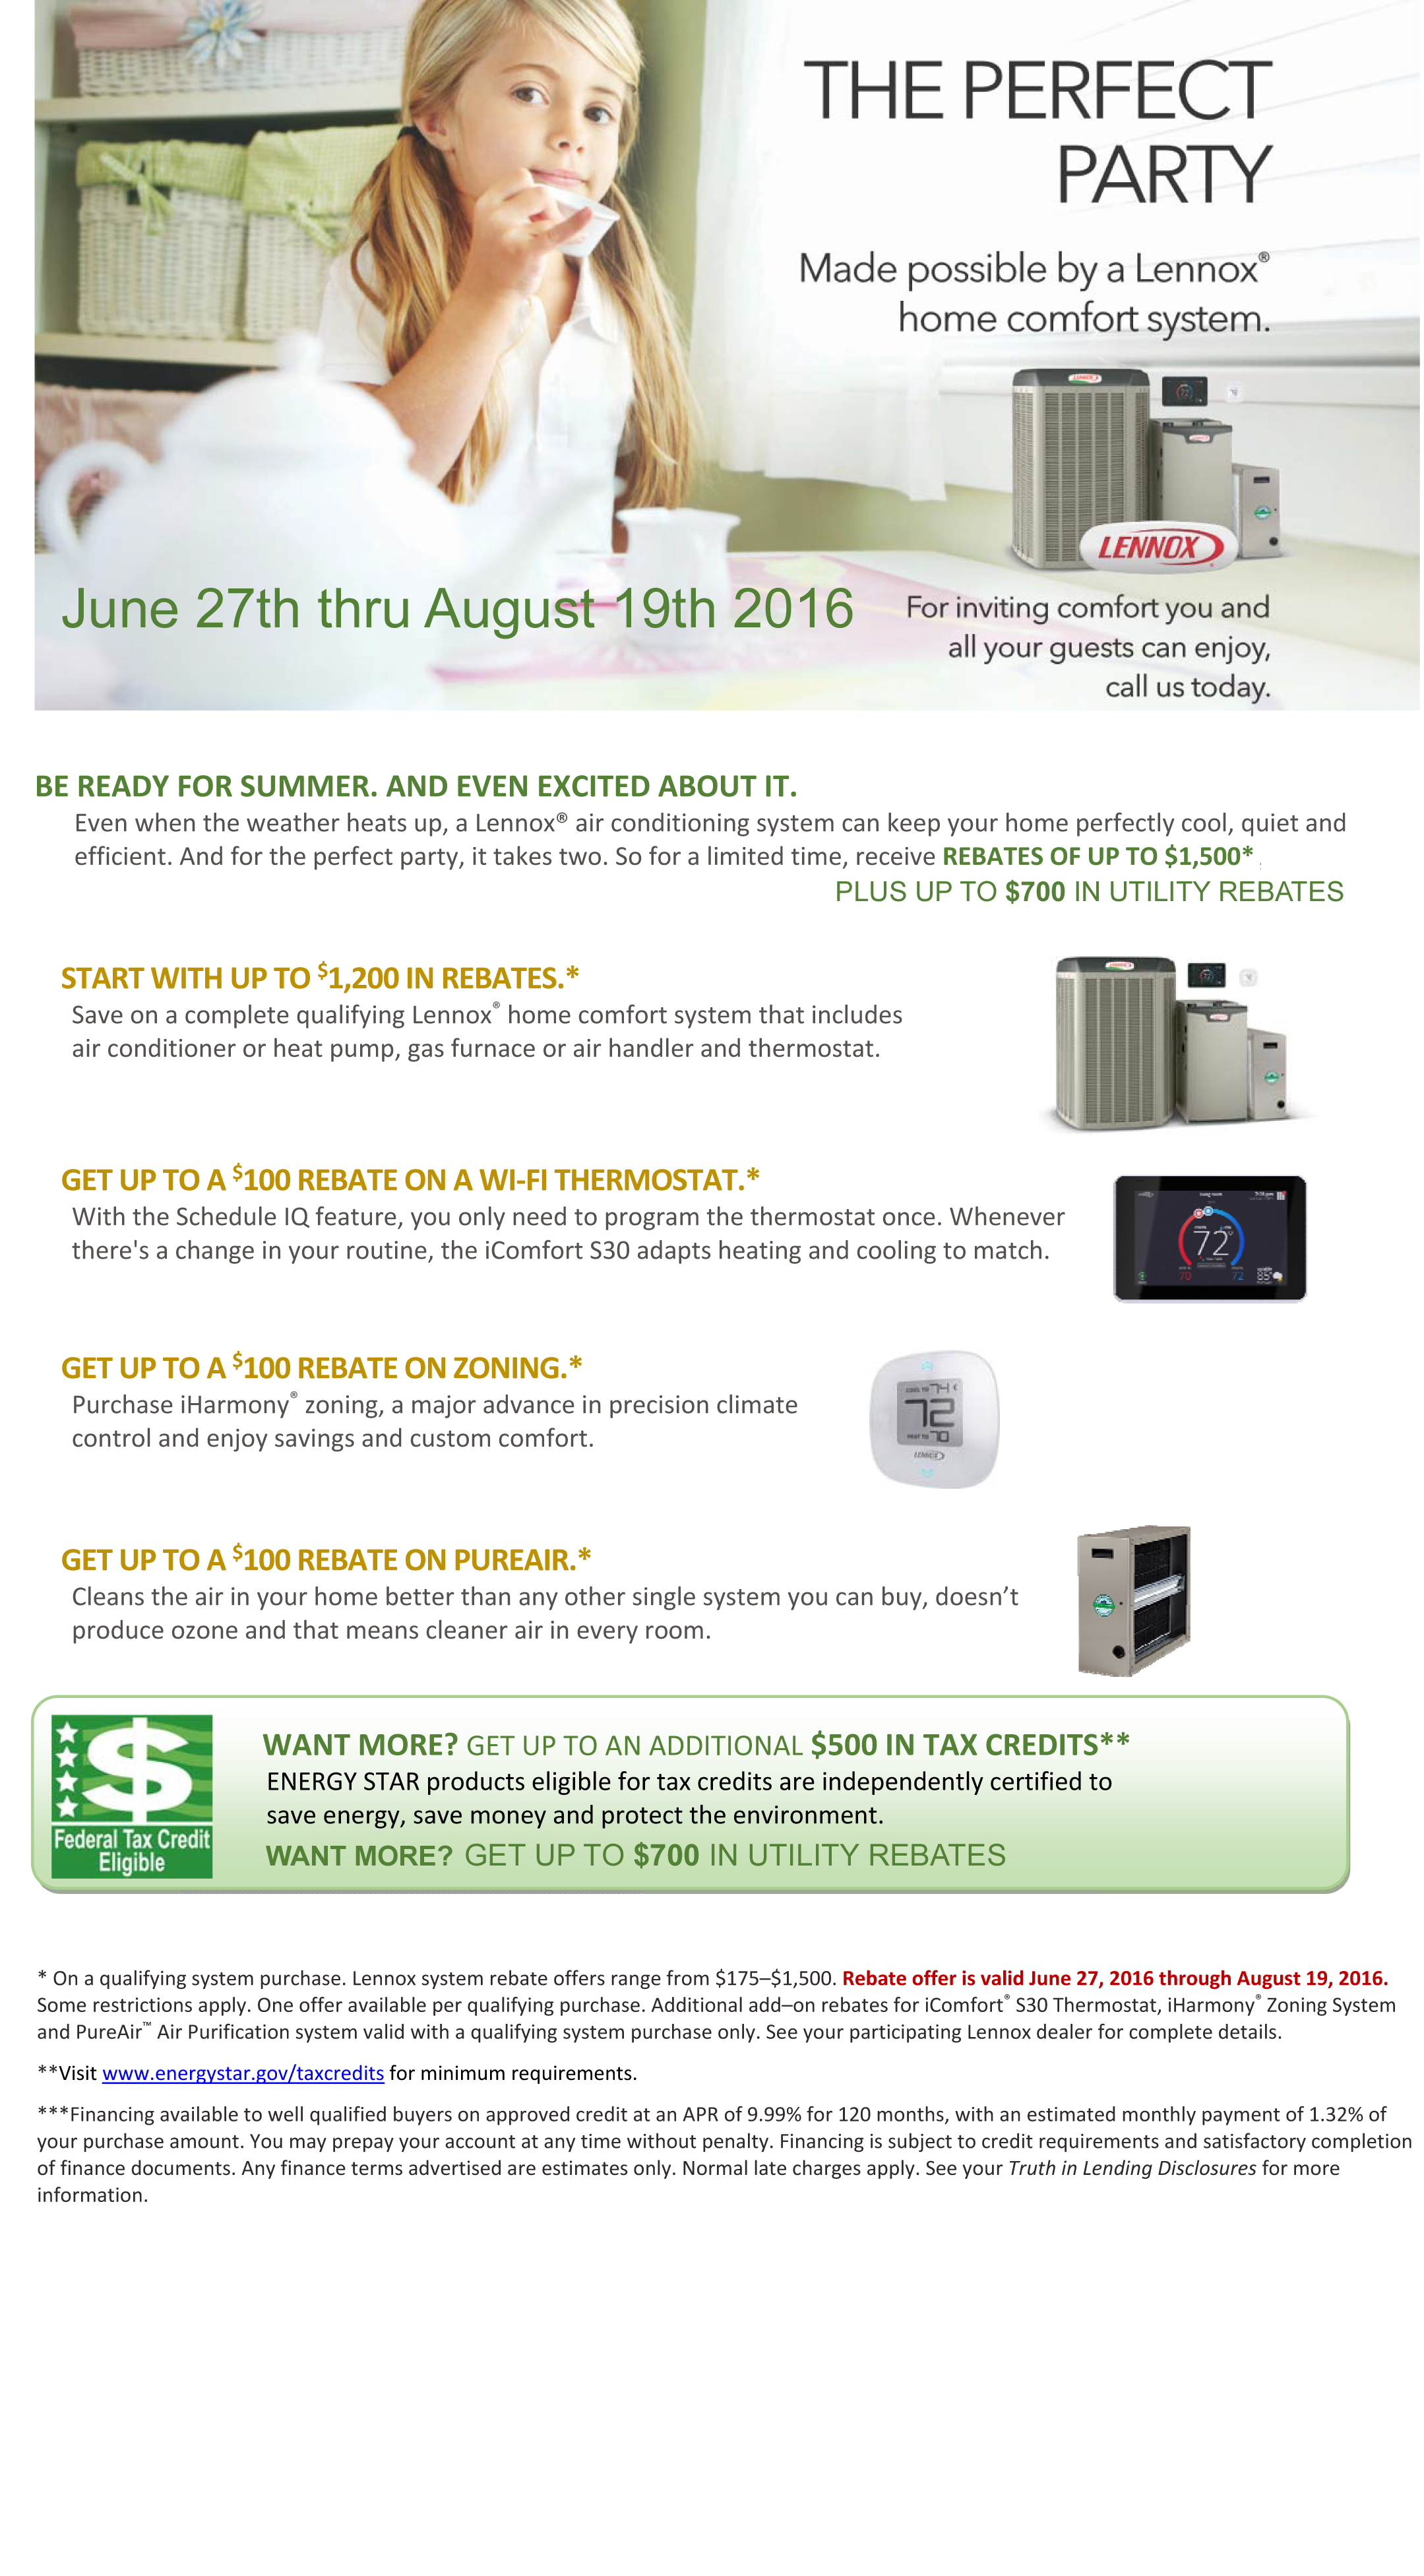 Summer 2016 Lennox Promotion Heating And Air